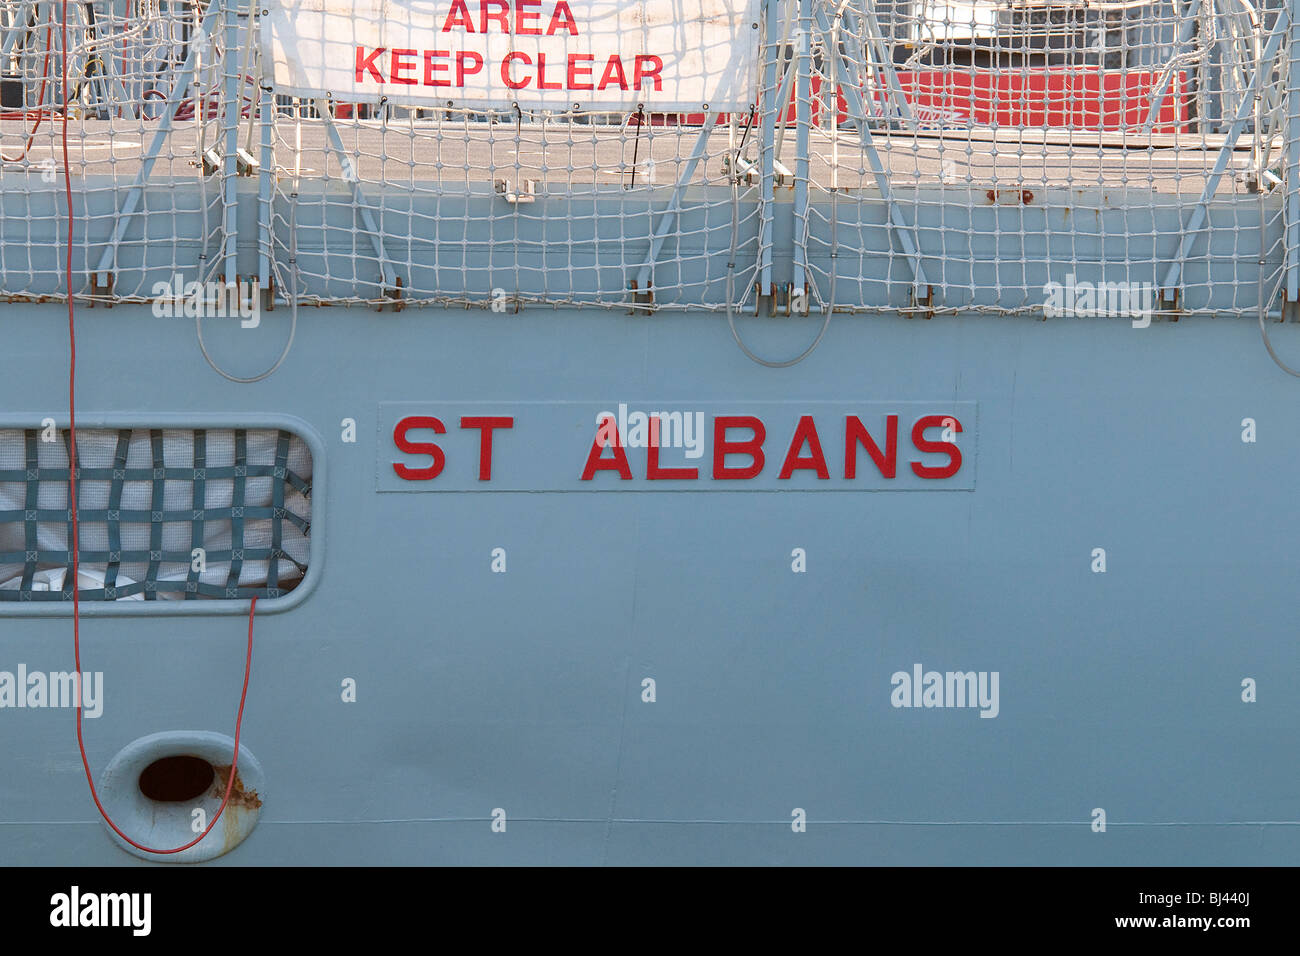 Name Plate on HMS St Albans British Navy Ship - Stock Image